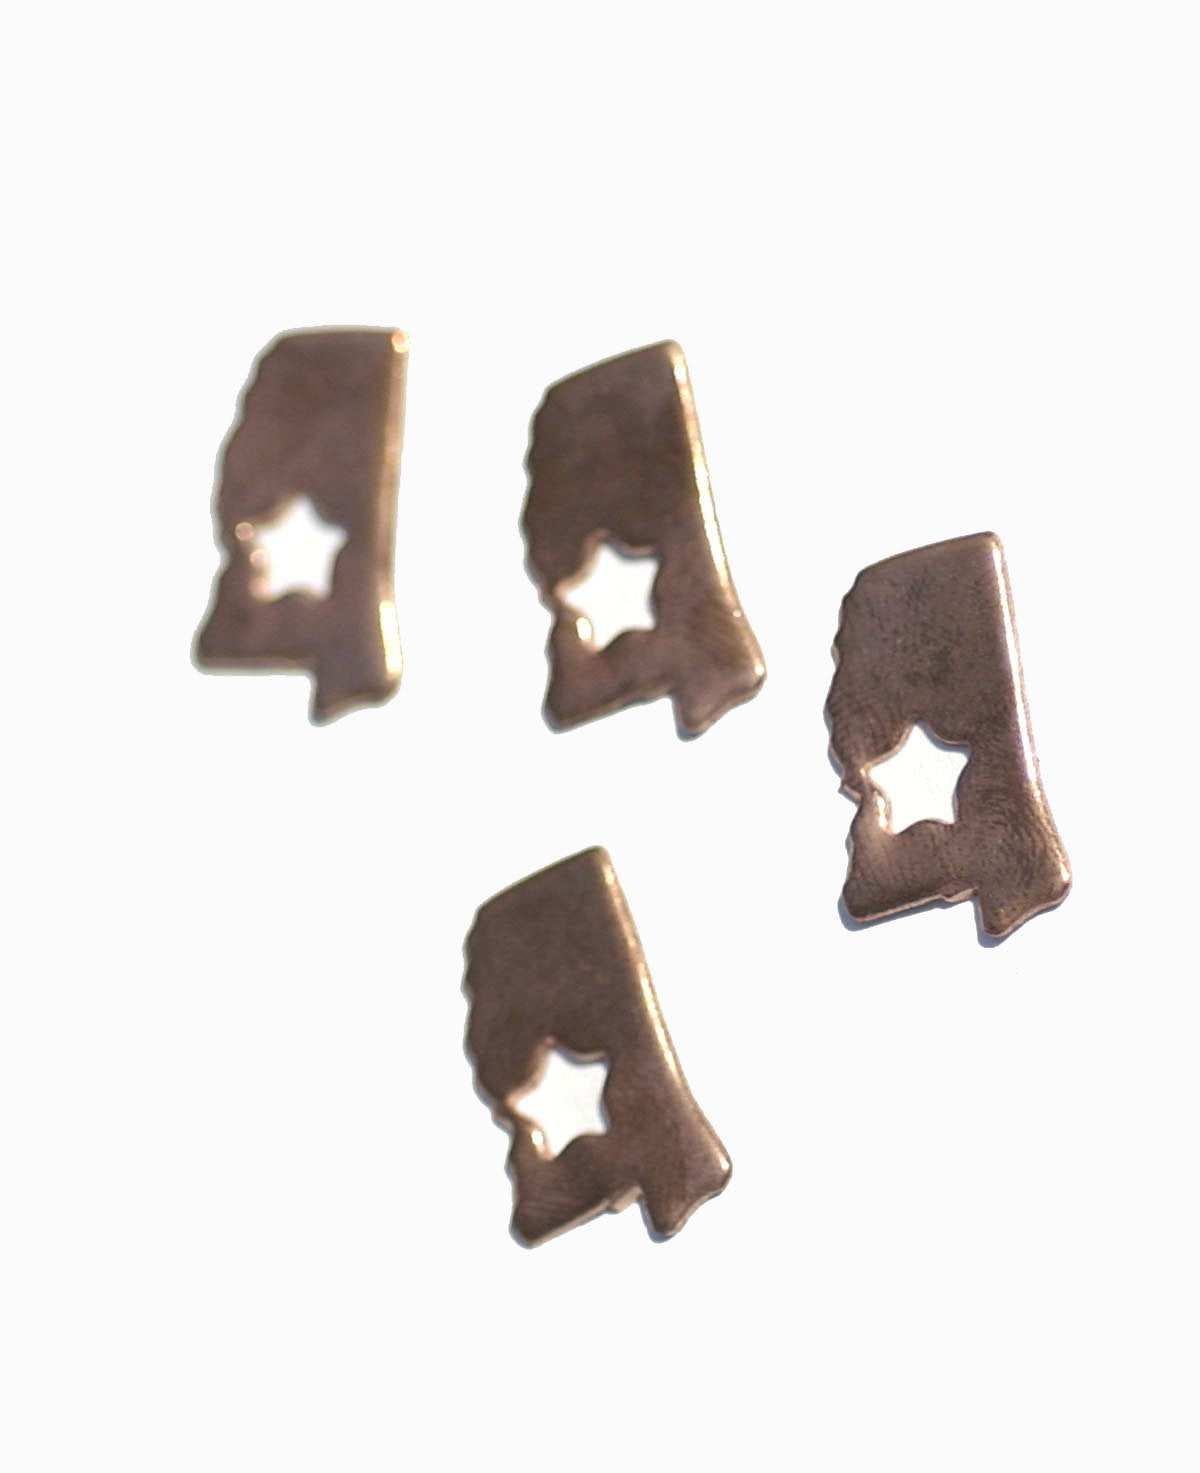 Mississippi Small State With Star Blanks Cutout for Enameling Metalworking Stamping Texturing Blank Variety of Metals - 6 pieces